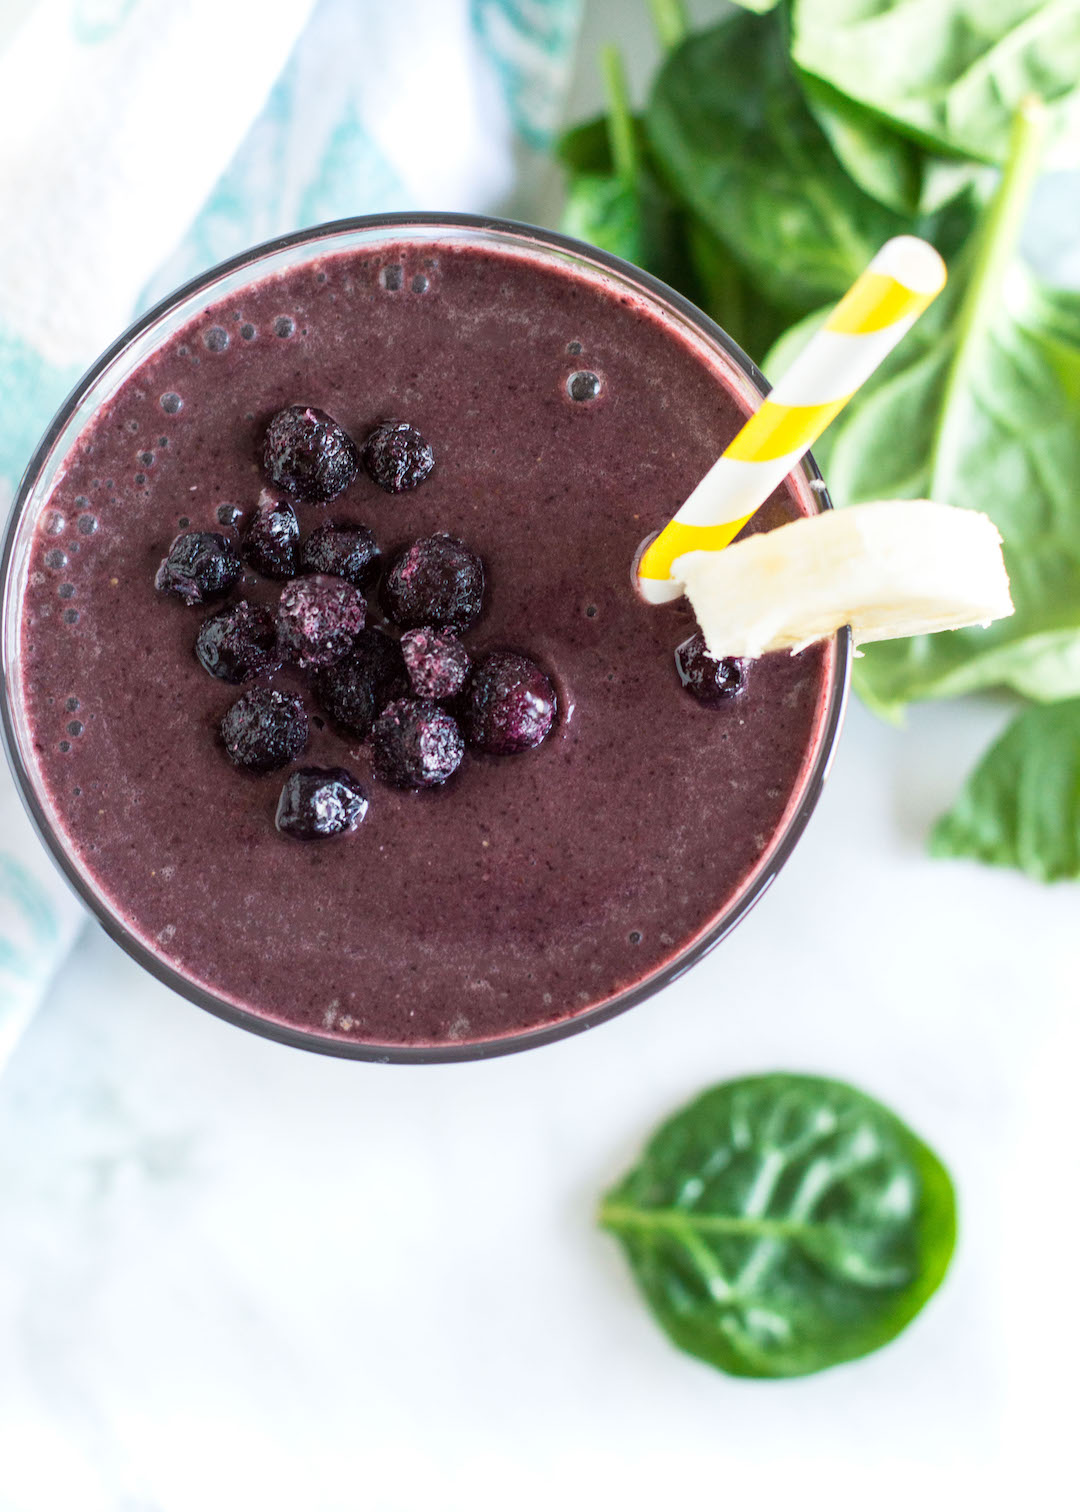 Superfood Smoothie   Blueberry and Greens Smoothie   recipe   gluten free, vegetarian, easy to make   green smoothie   And you can't even taste the spinach!